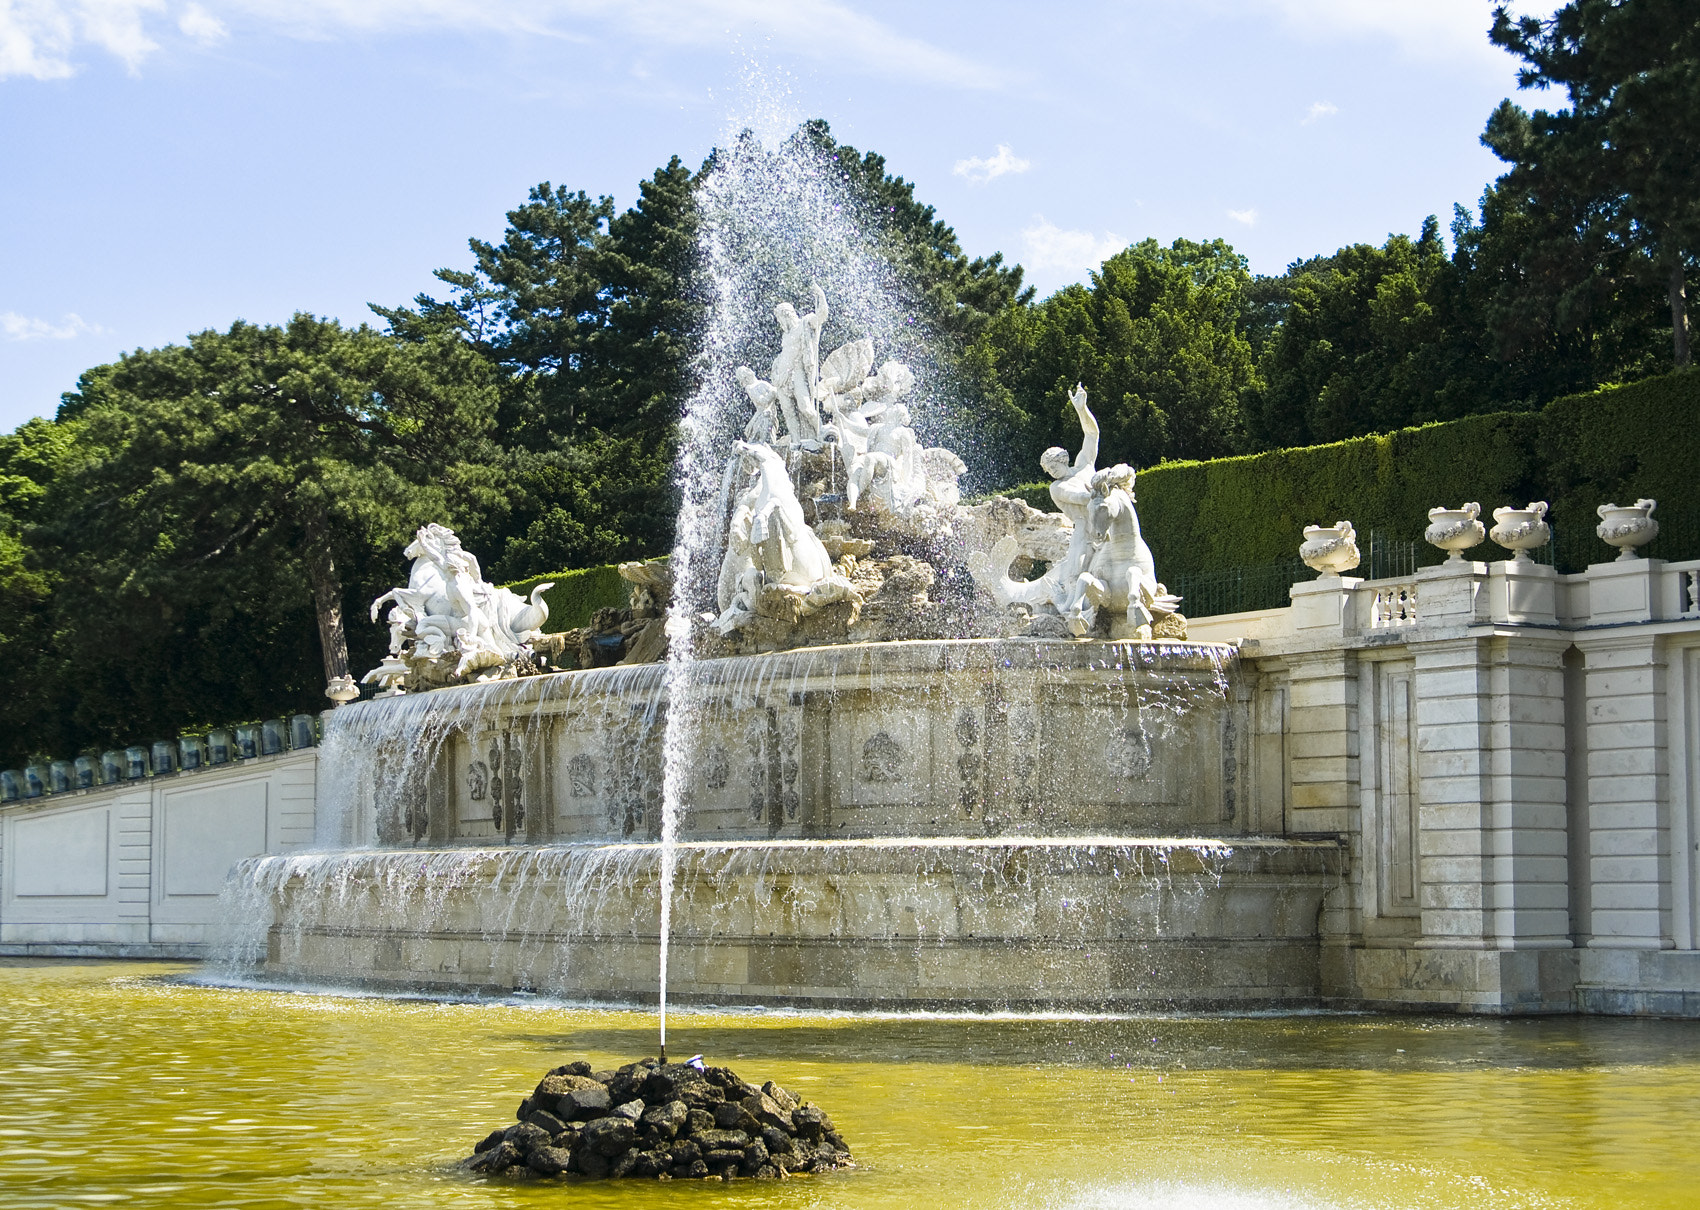 Photograph Neptun Brunnen by Marie-Louise Titze on 500px